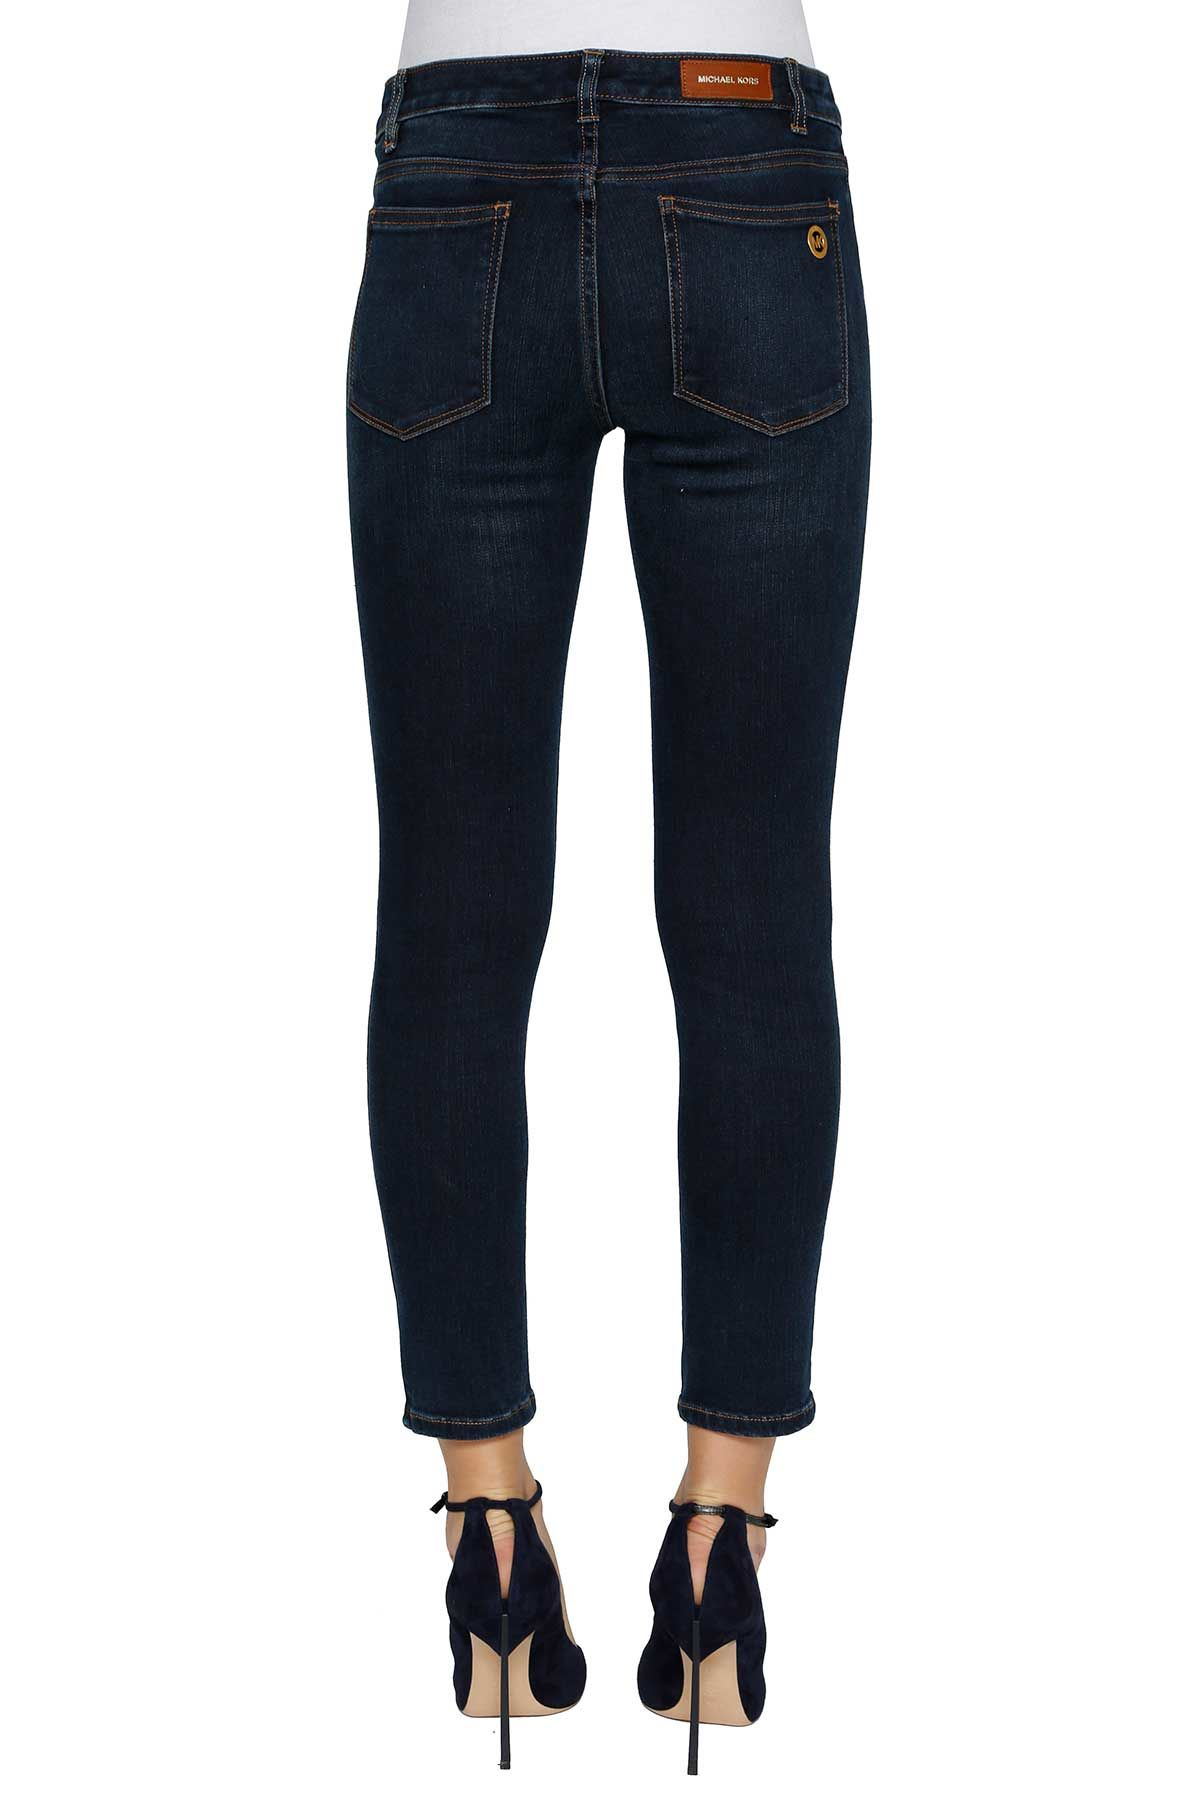 michael michael kors michael michael kors skinny jeans midnight women 39 s jeans italist. Black Bedroom Furniture Sets. Home Design Ideas